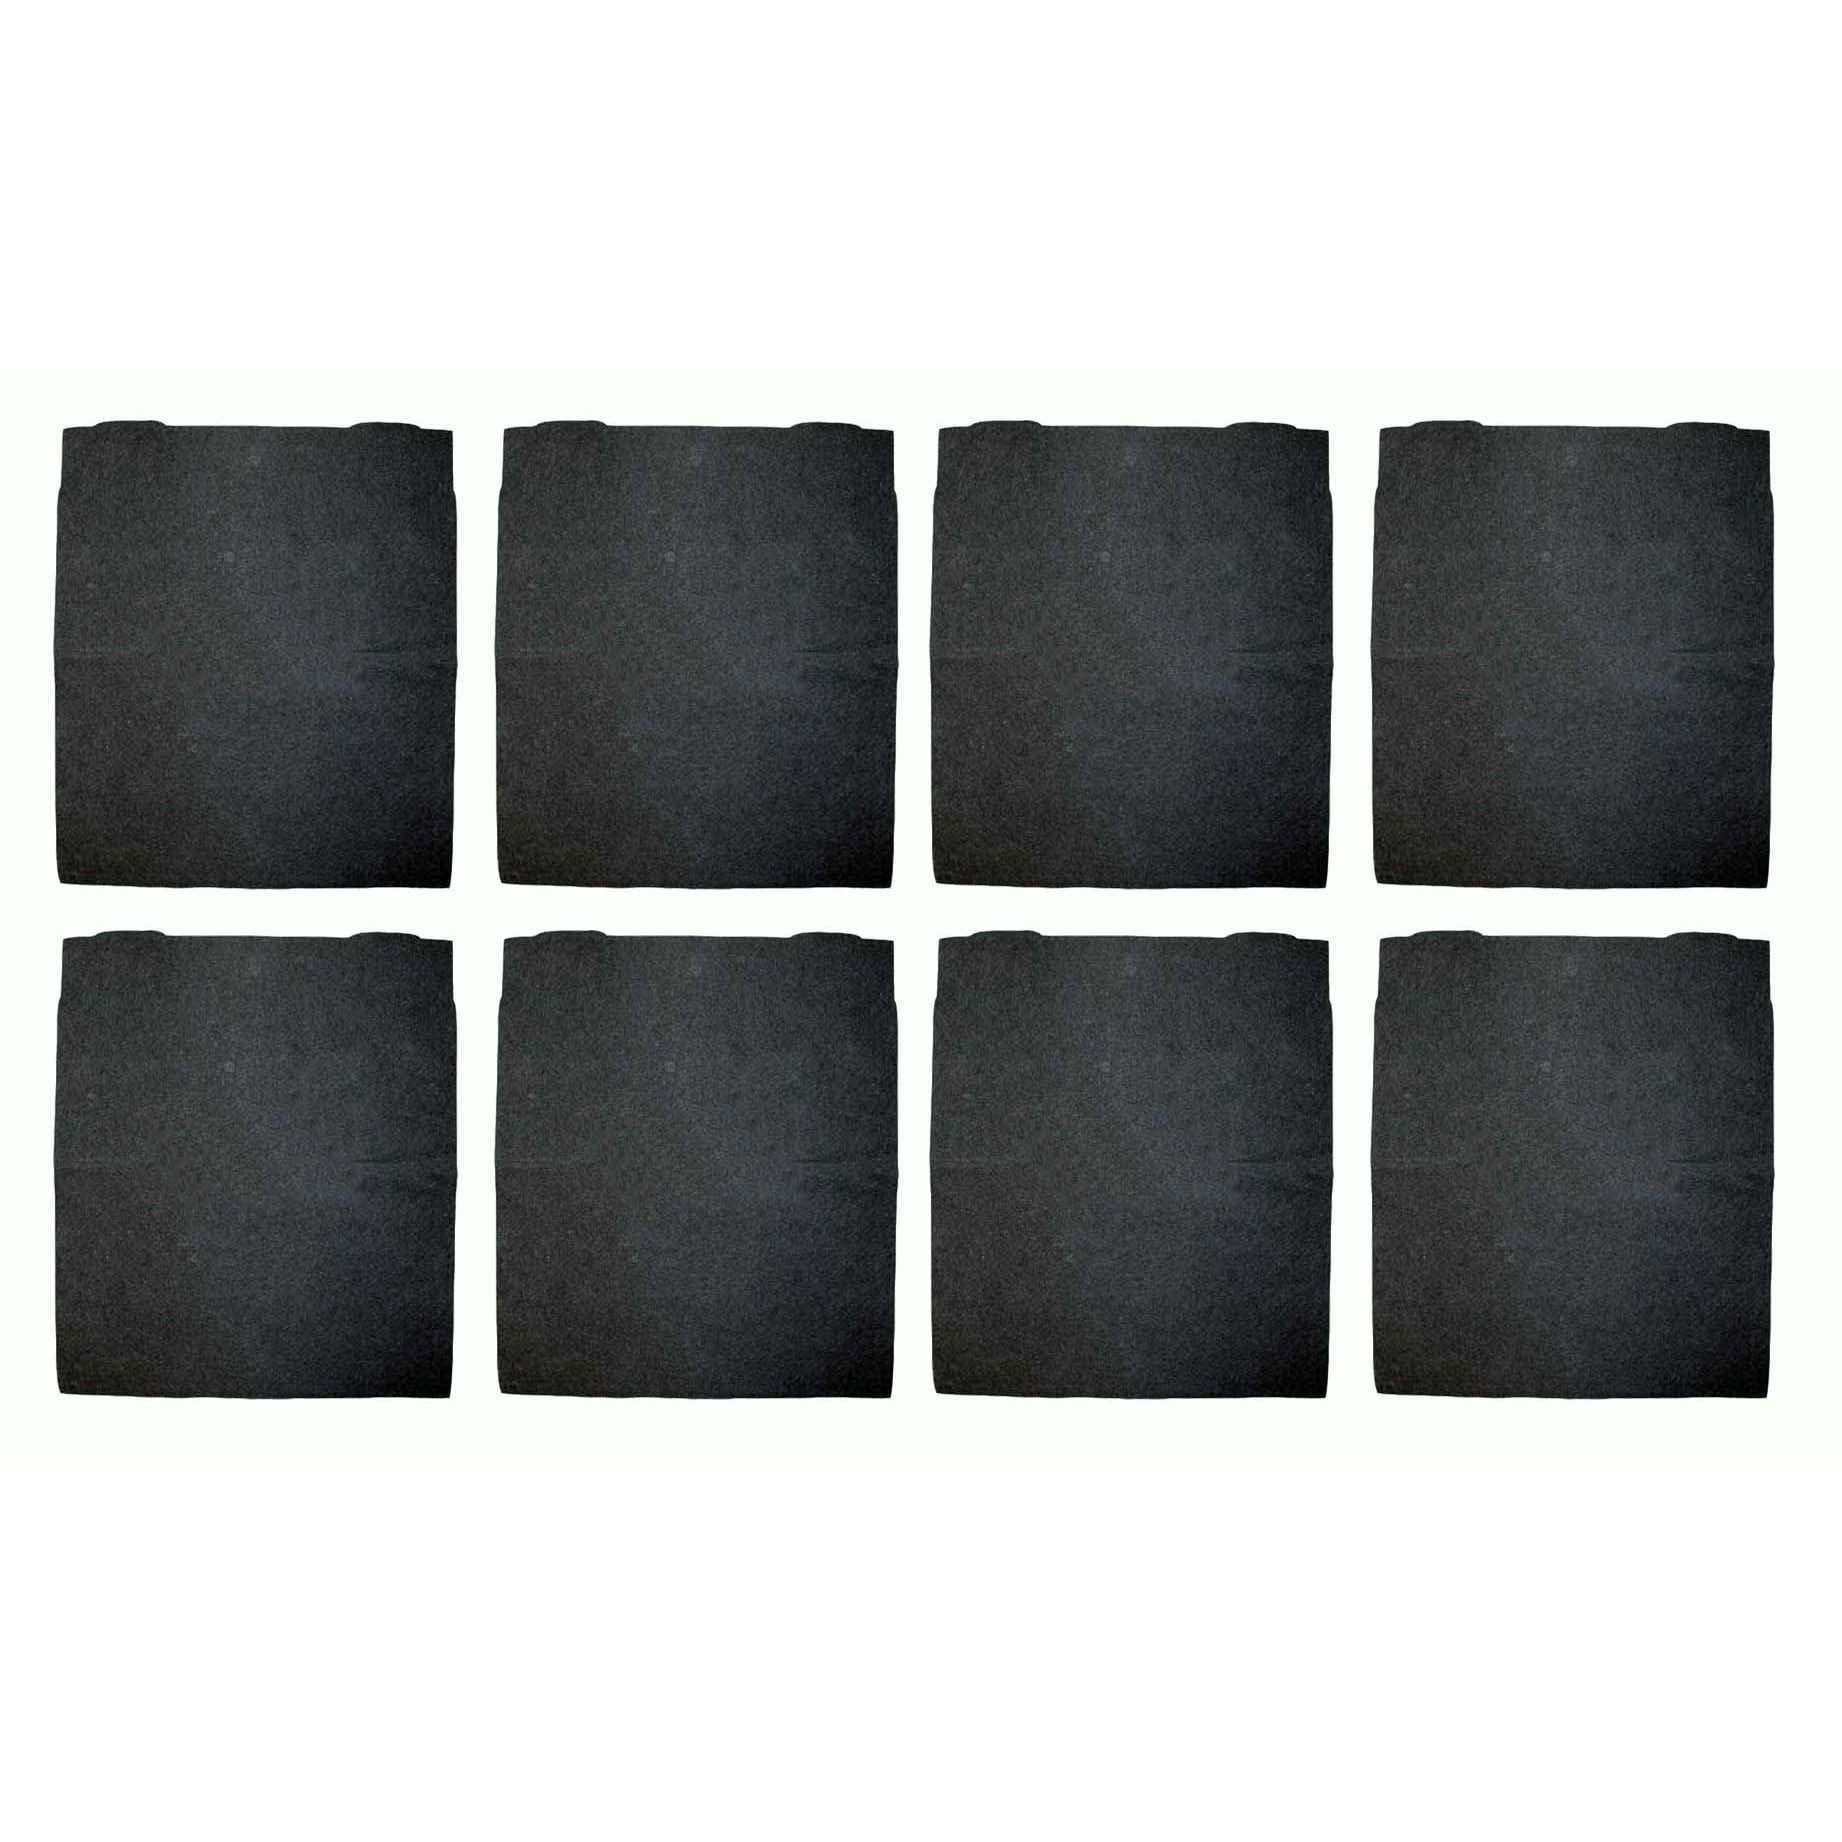 Crucial 8 Kenmore 295 Series Carbon Pre-Filters, Part # 8...